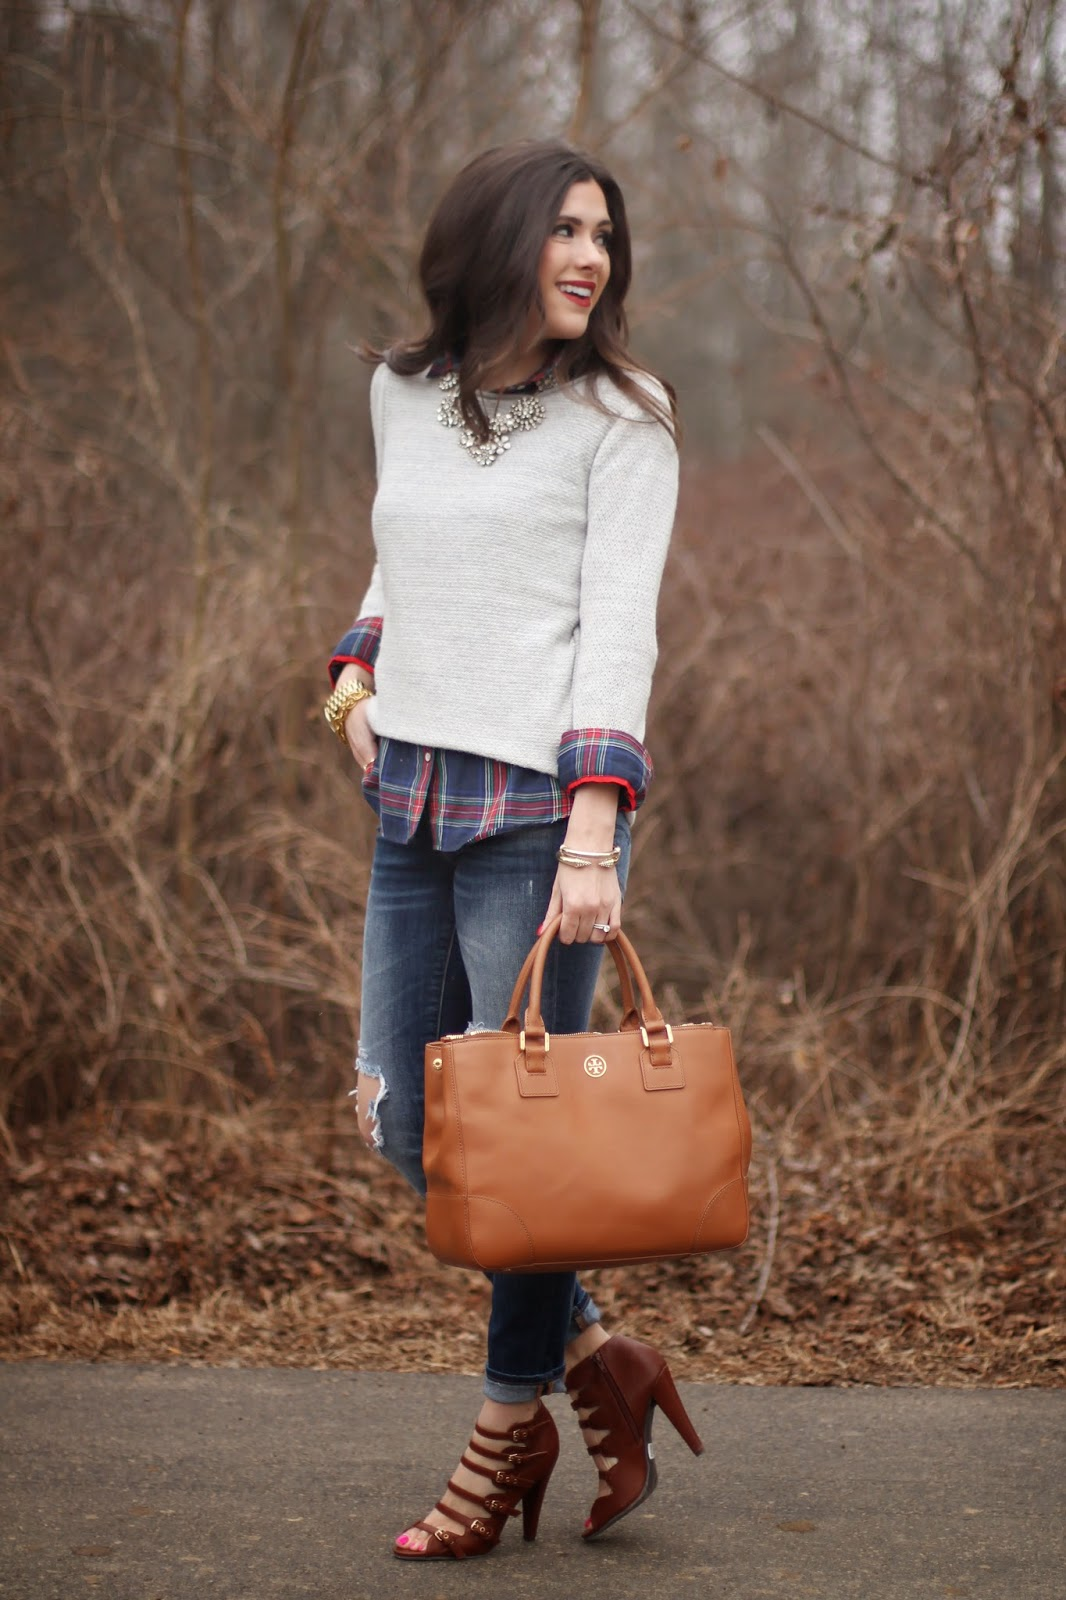 www.theSweetestThingblog.com, Emily Gemma, The Sweetest Thing, J.crew inspired crystal necklace, John Wind Bracelet, Michael Kors Runway Watch, Gray sweater plaid shiirt, Torn up Jeans, Strappy heels, Windsor Store Shoes, Bellami hair, david yurman Ring, tory burch robinson tote